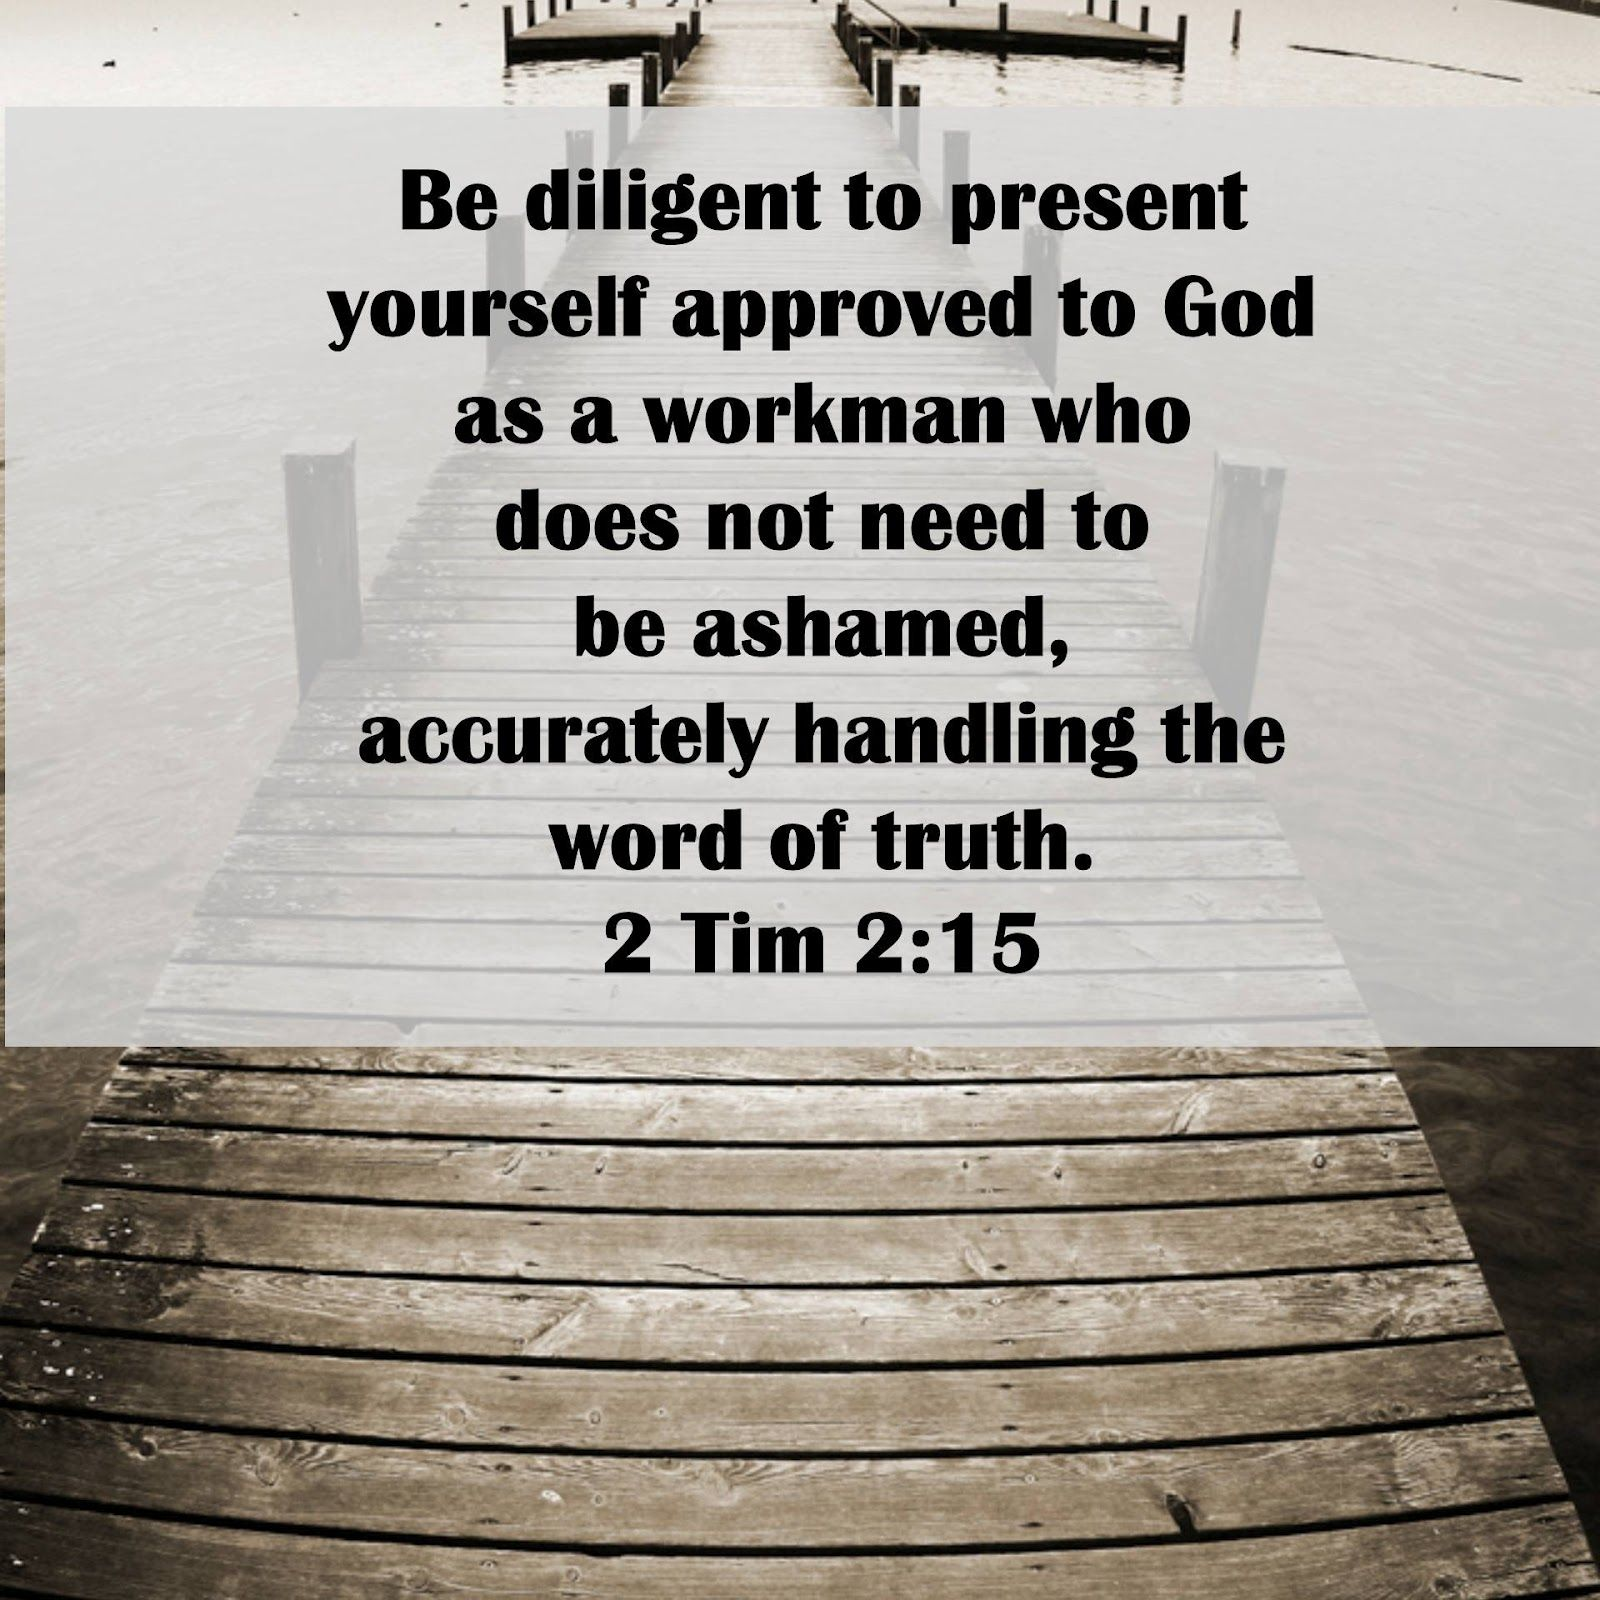 {Be} Not Ashamed 2 Tim 2:15    Be diligent to present yourself approved to God as a workman who does not need to be ashamed, accurately handling the word of truth.